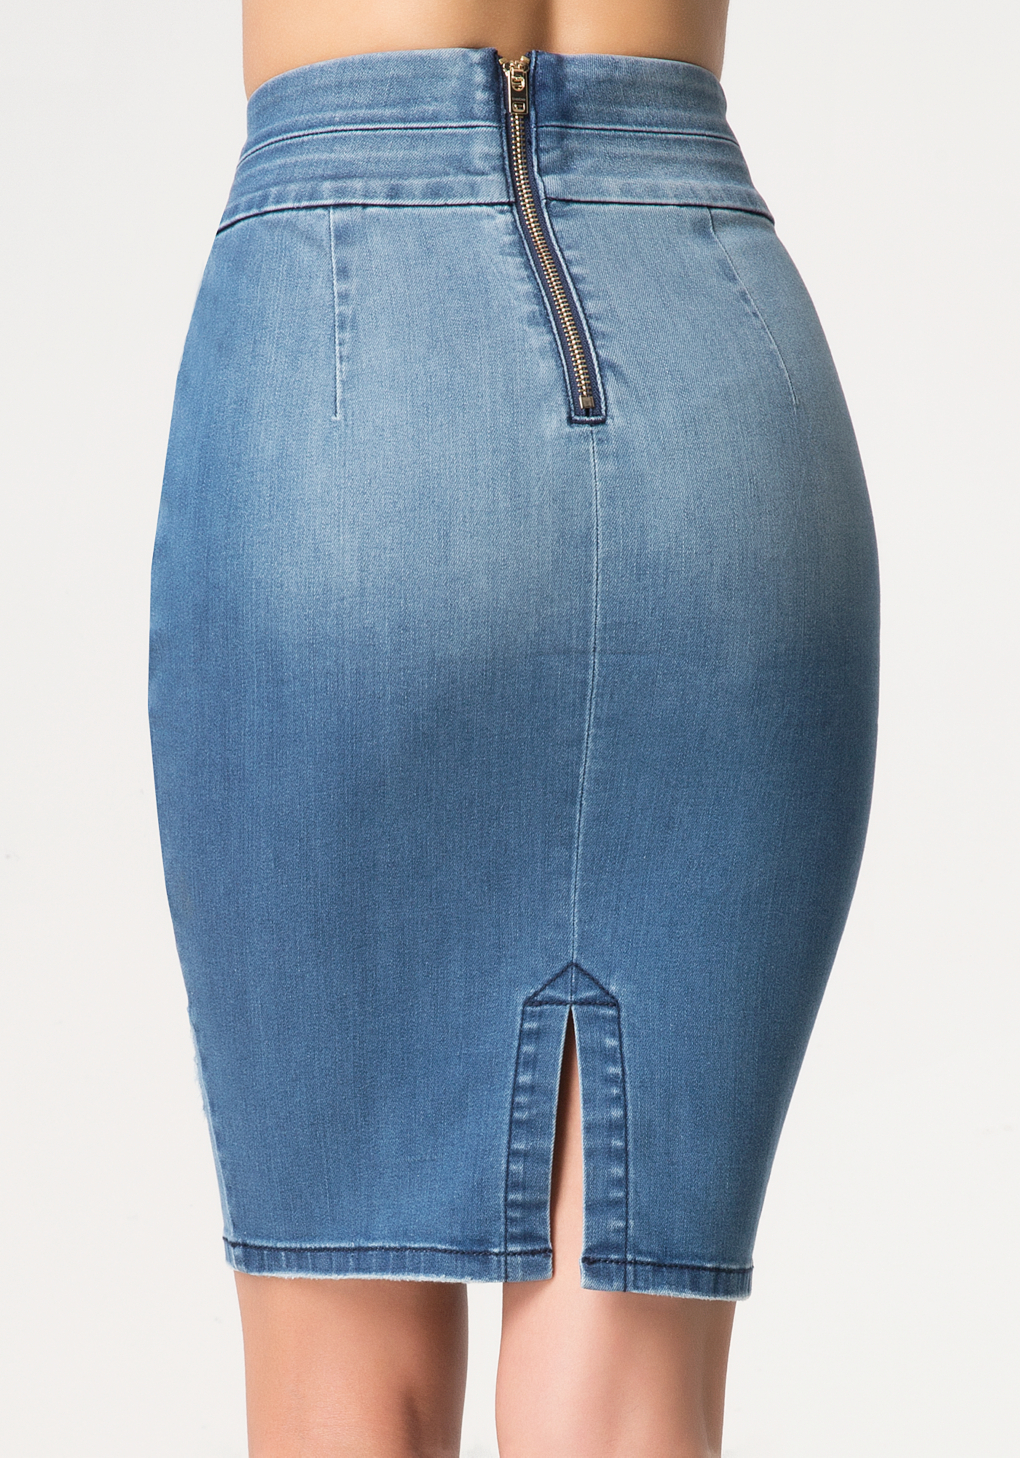 Bebe Denim Pencil Skirt in Blue | Lyst